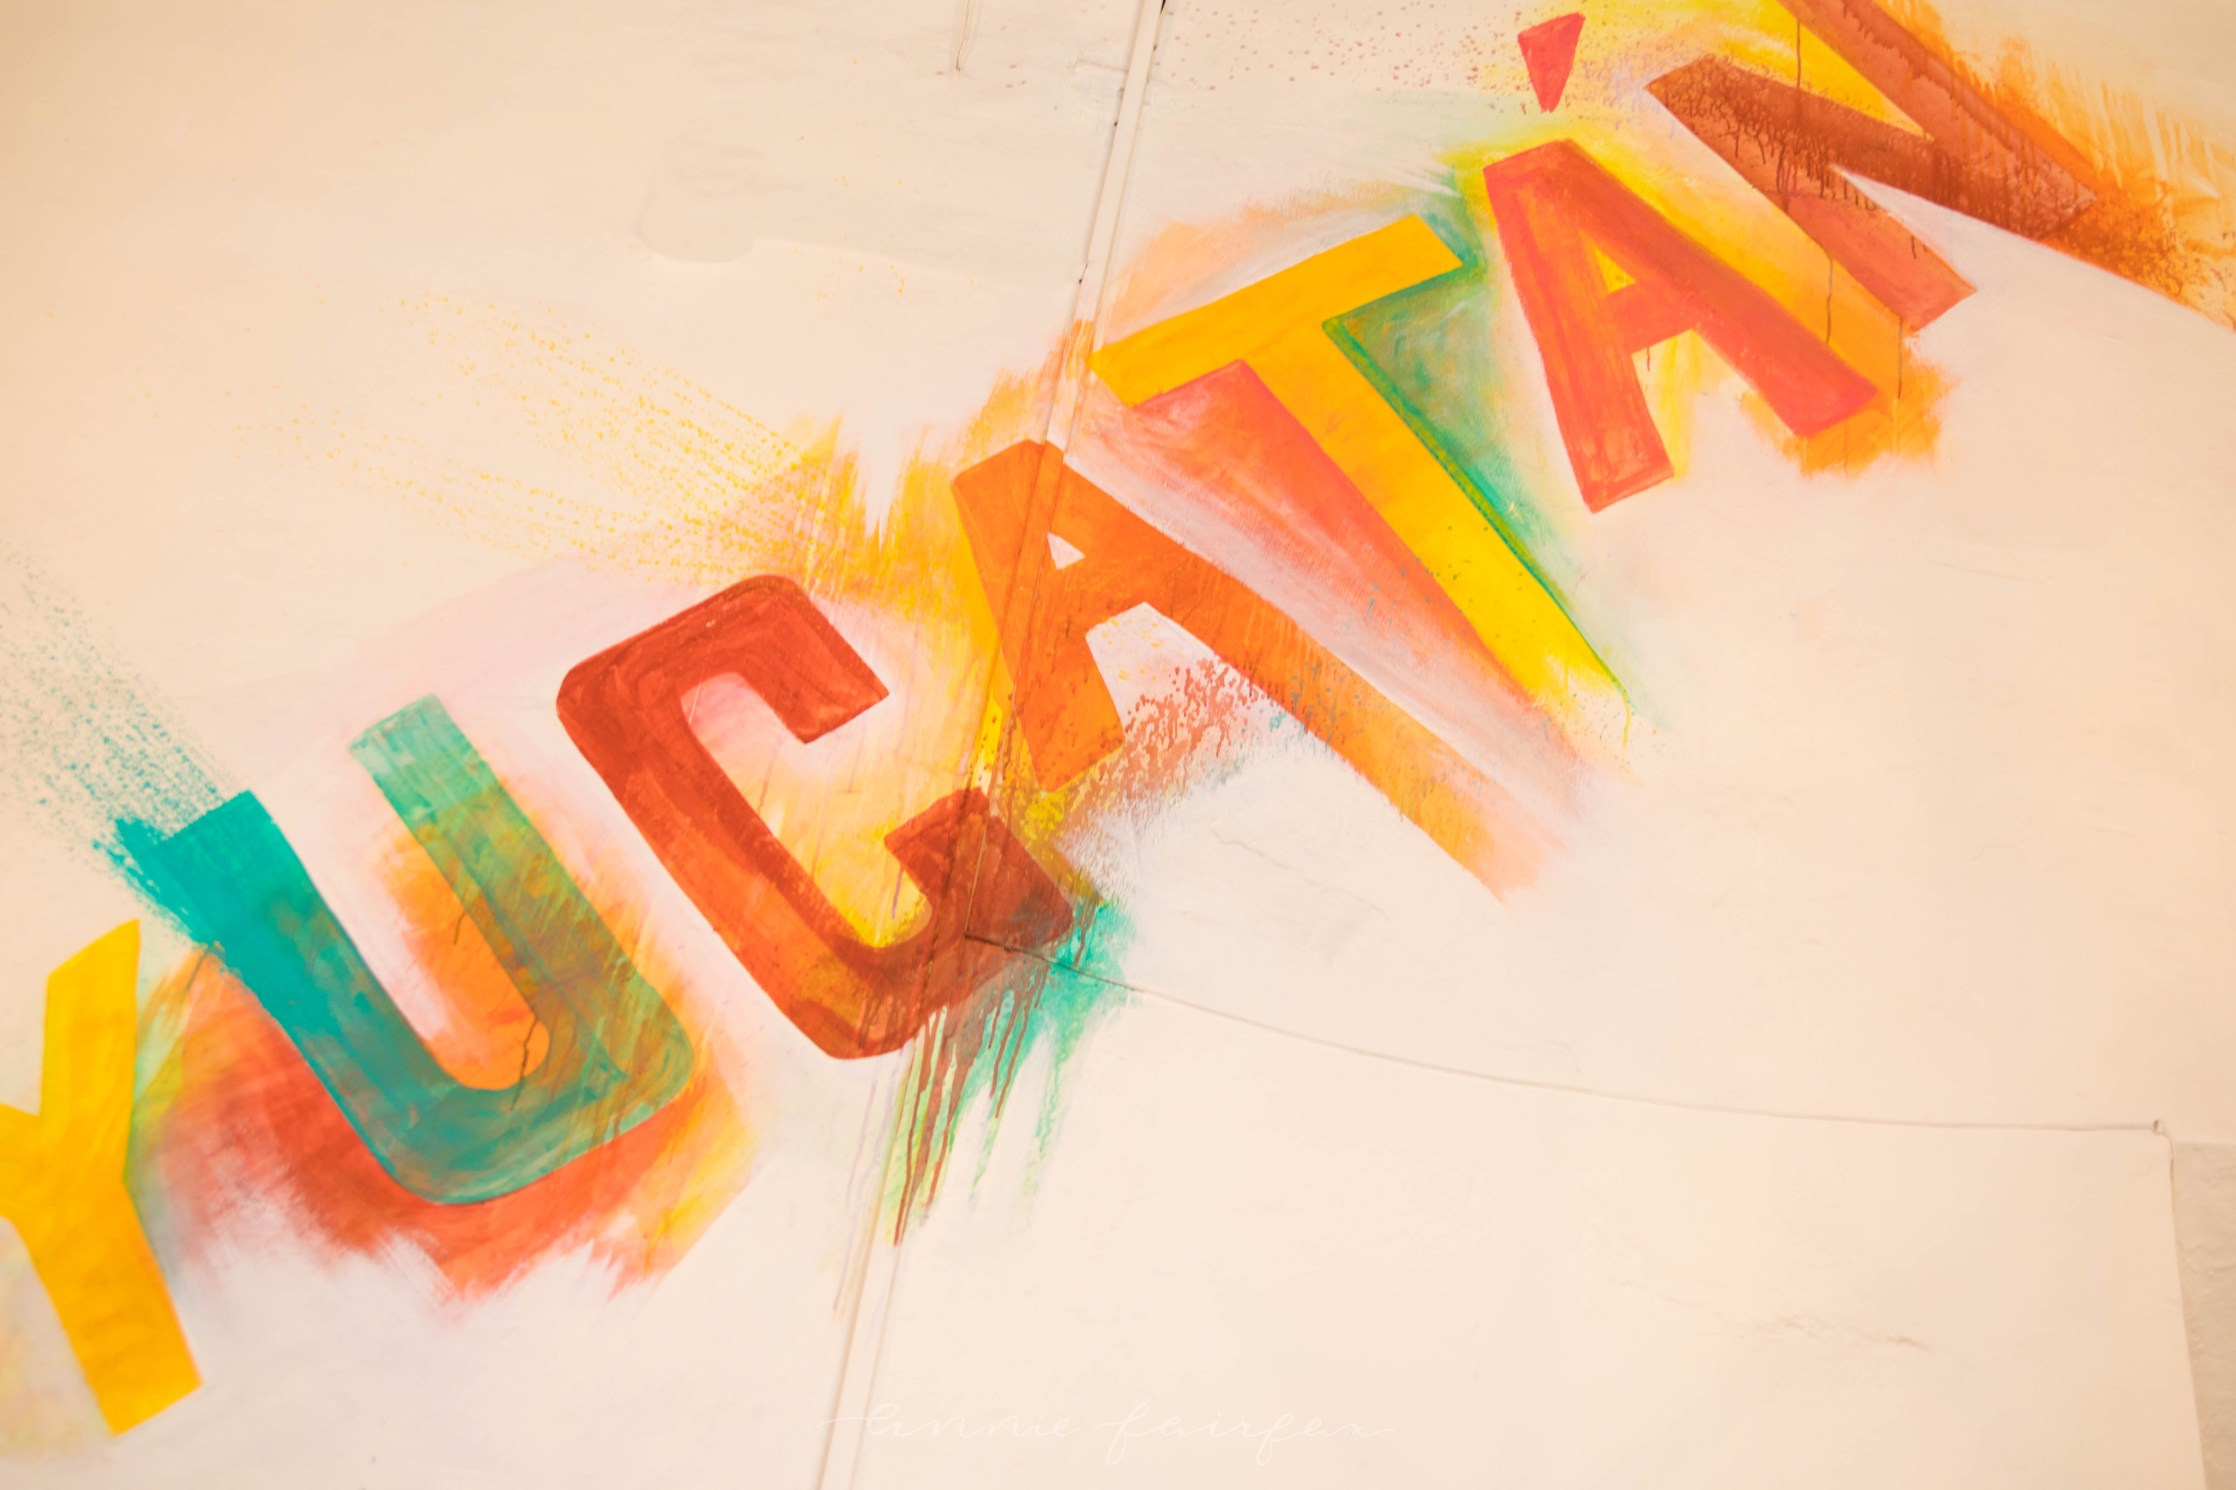 Tikua is mixing art, culture, and cuisine in Queretaro, Mexico and it's scrumptious!